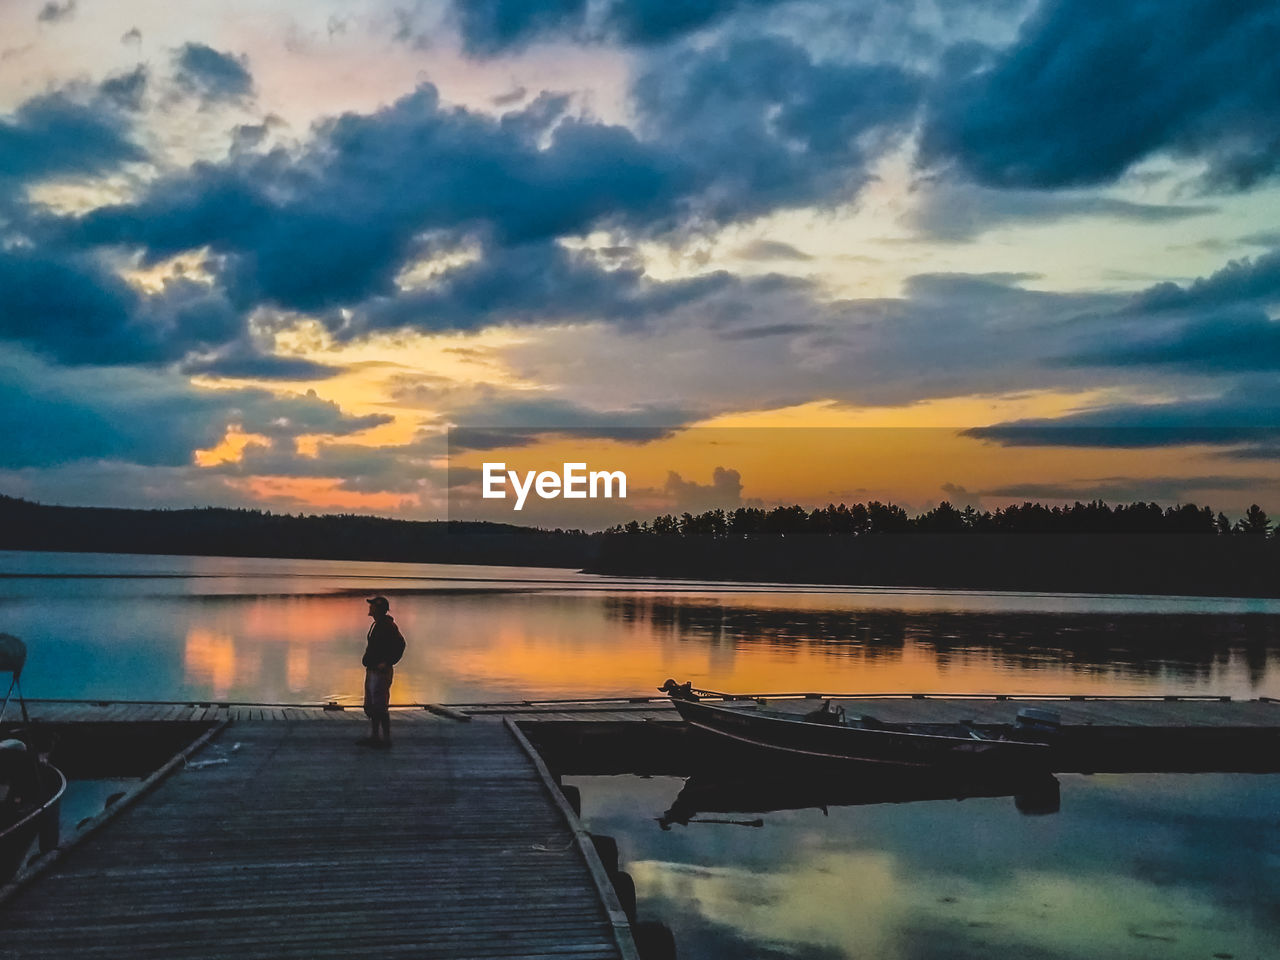 SCENIC VIEW OF PIER ON LAKE AGAINST SKY DURING SUNSET